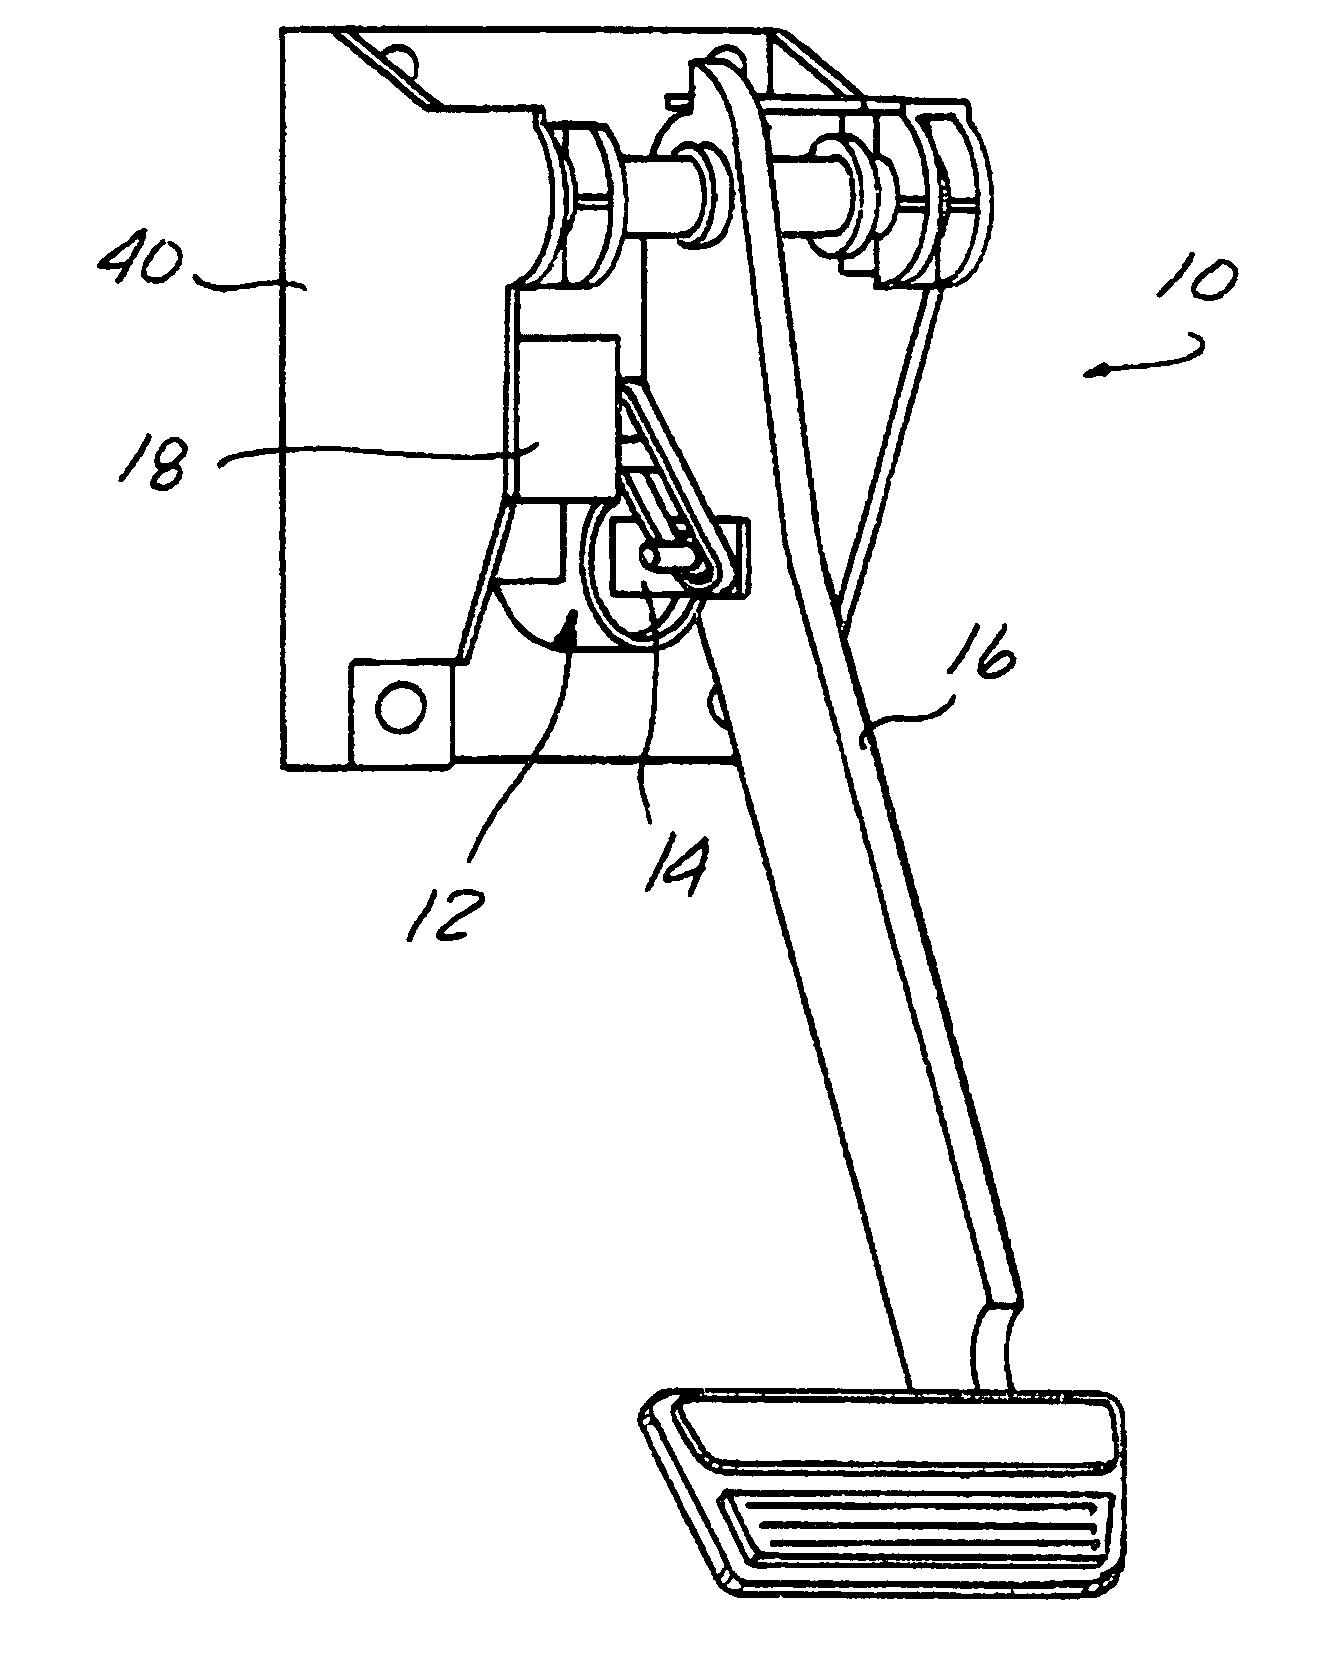 patent us20050082909 - pedal feel emulator mechanism for brake by wire pedal